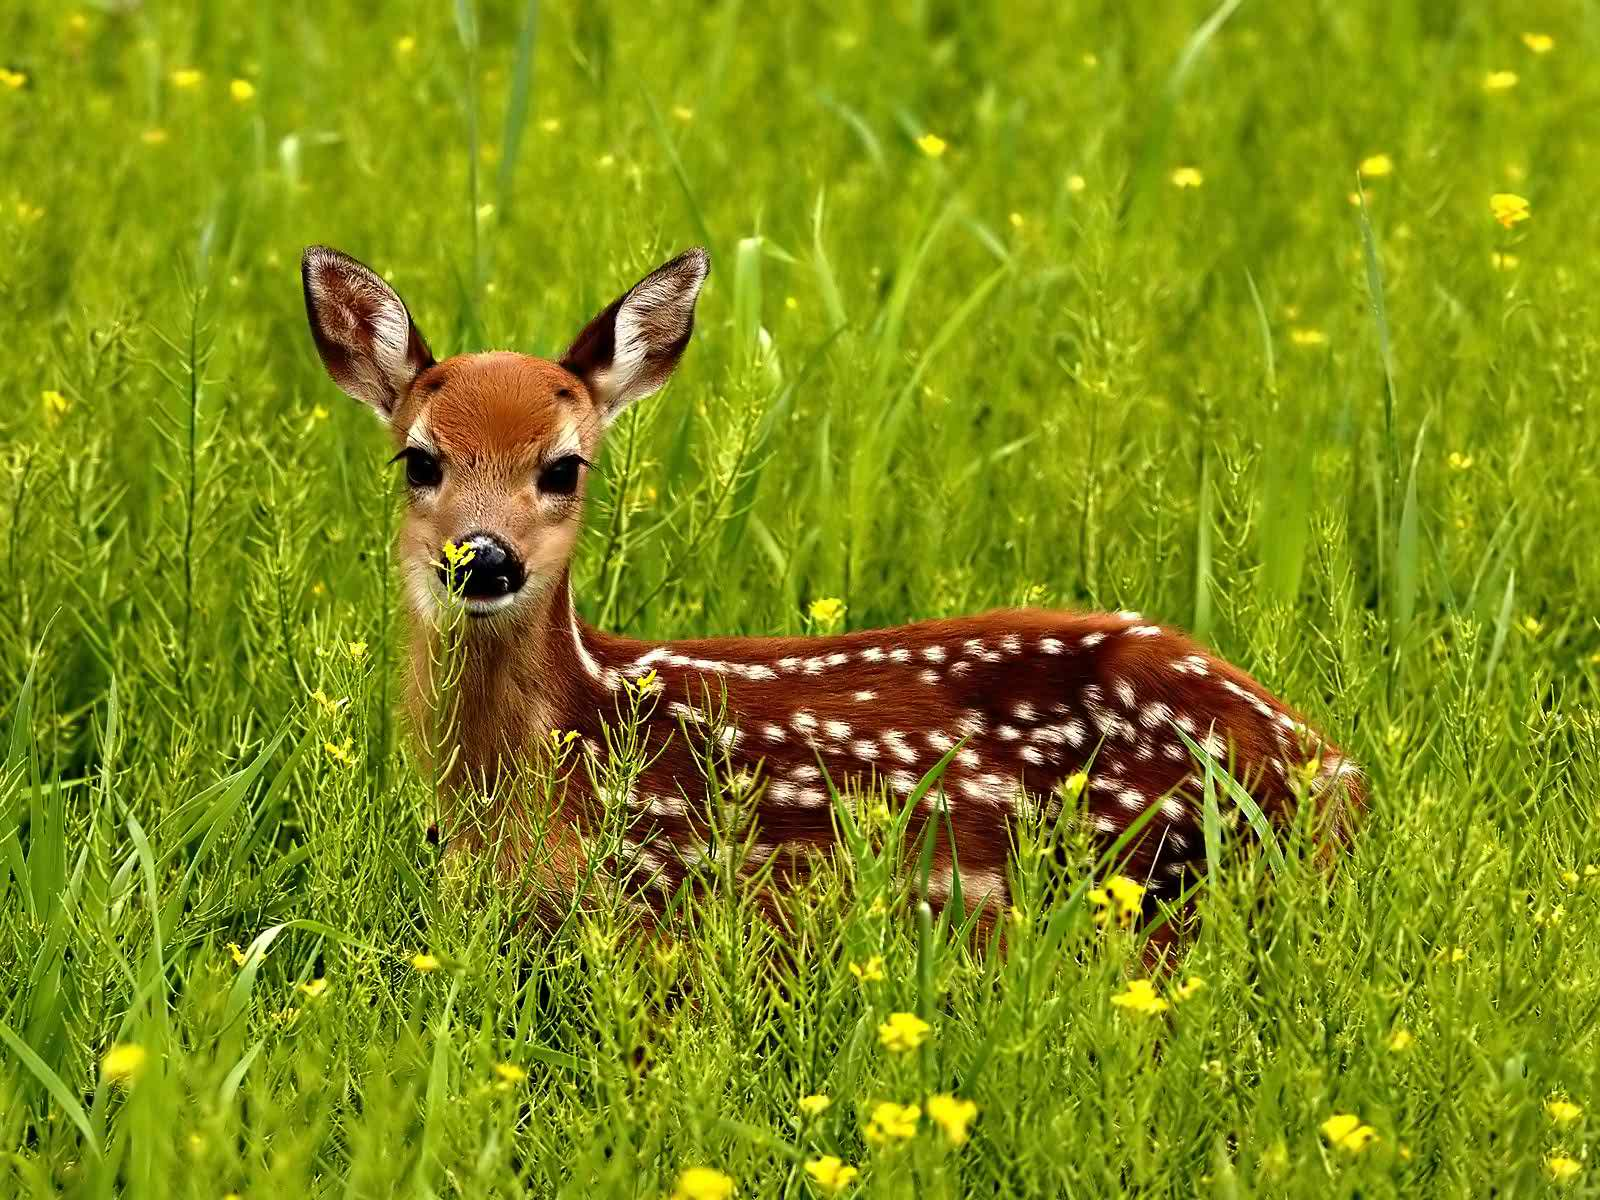 Baby animal wallpaper hd images – one hd wallpaper pictures.